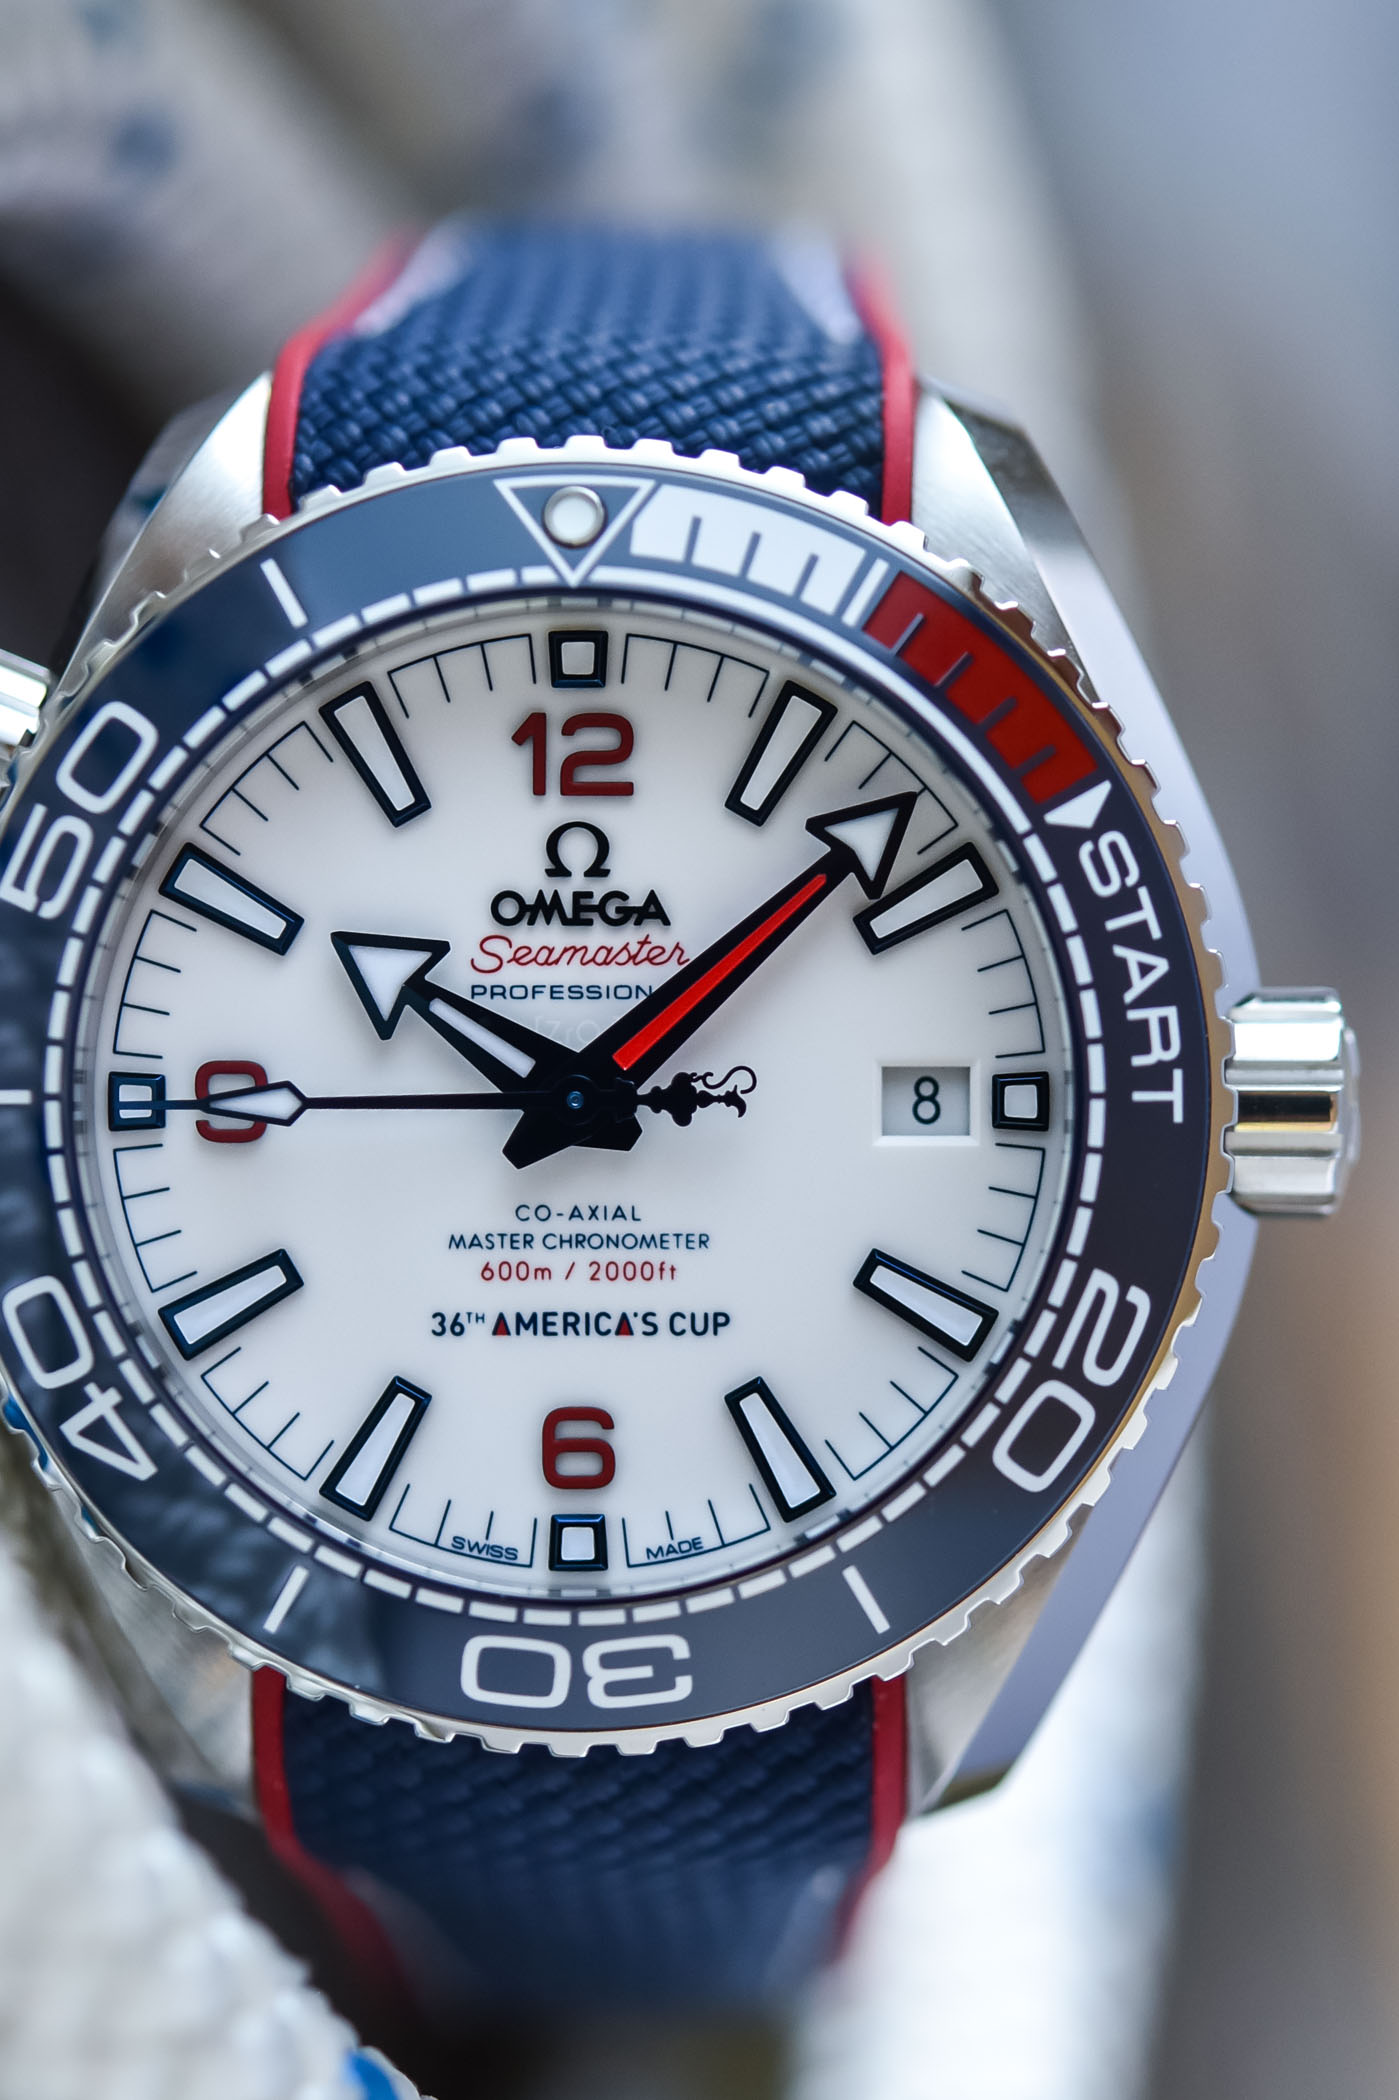 Omega Seamaster Planet Ocean 600m 36th America's Cup